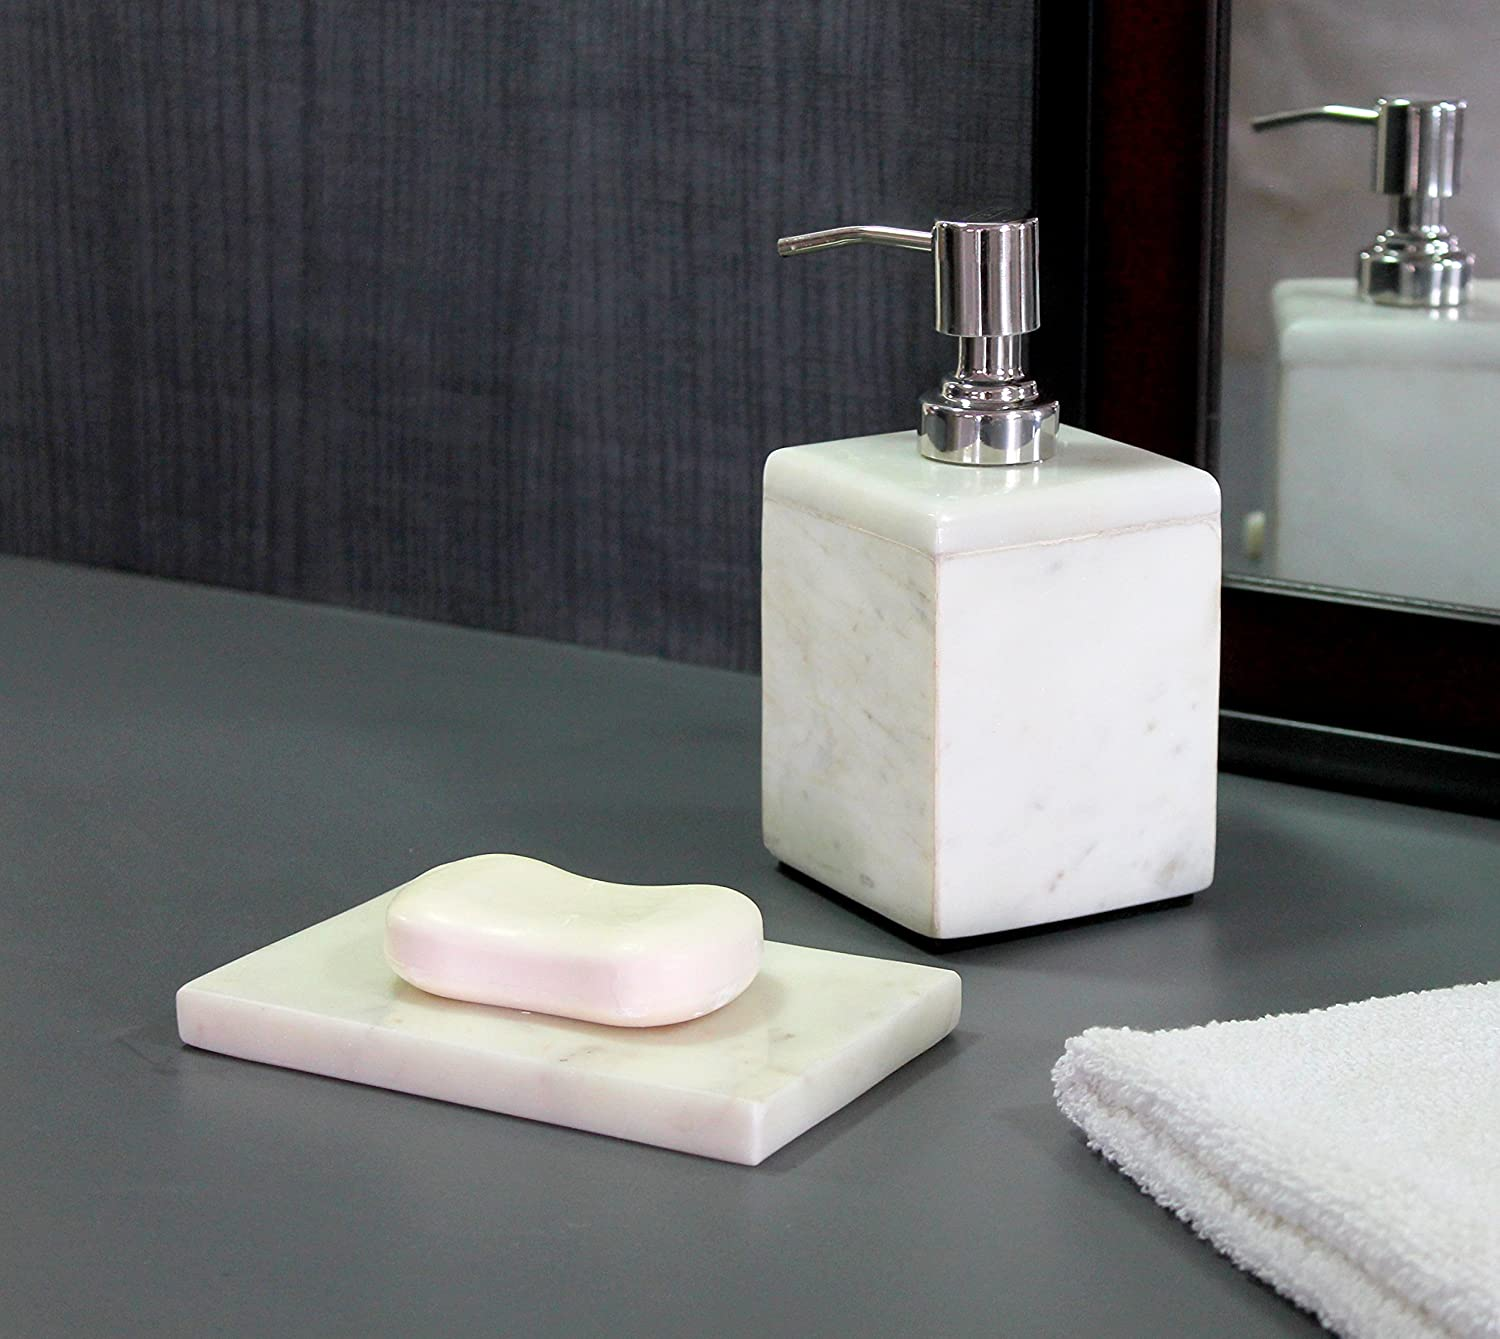 KLEO - Bathroom Accessory Set made from White Marble Stone - Bath Accessories set of 2 includes Soap Dispenser, Soap Dish